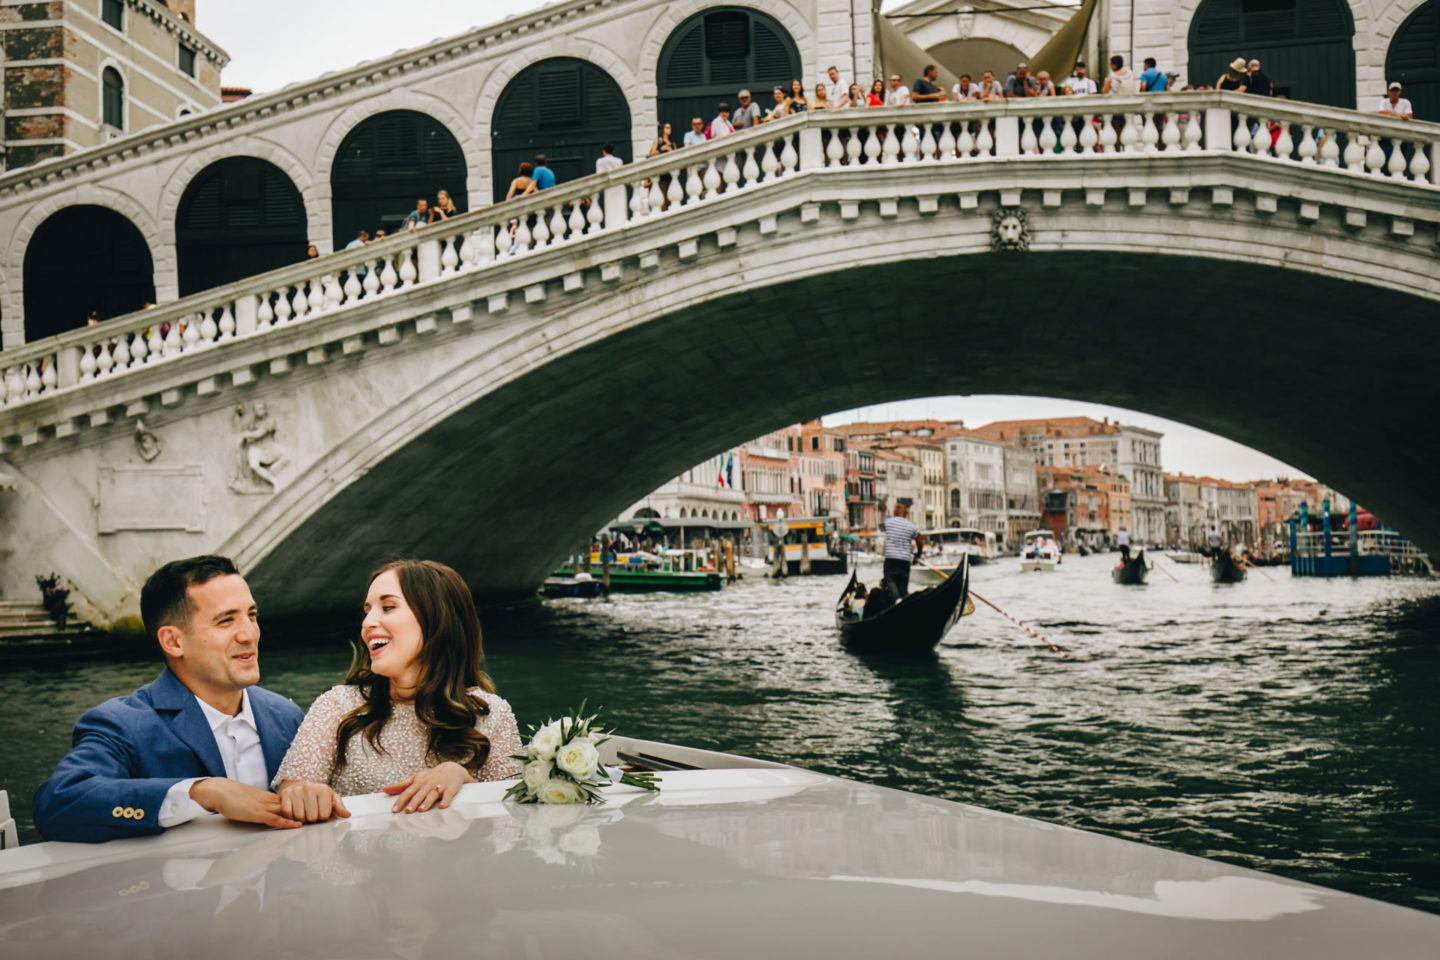 Romantic elopement in Venice :: Luxury wedding photography - 4